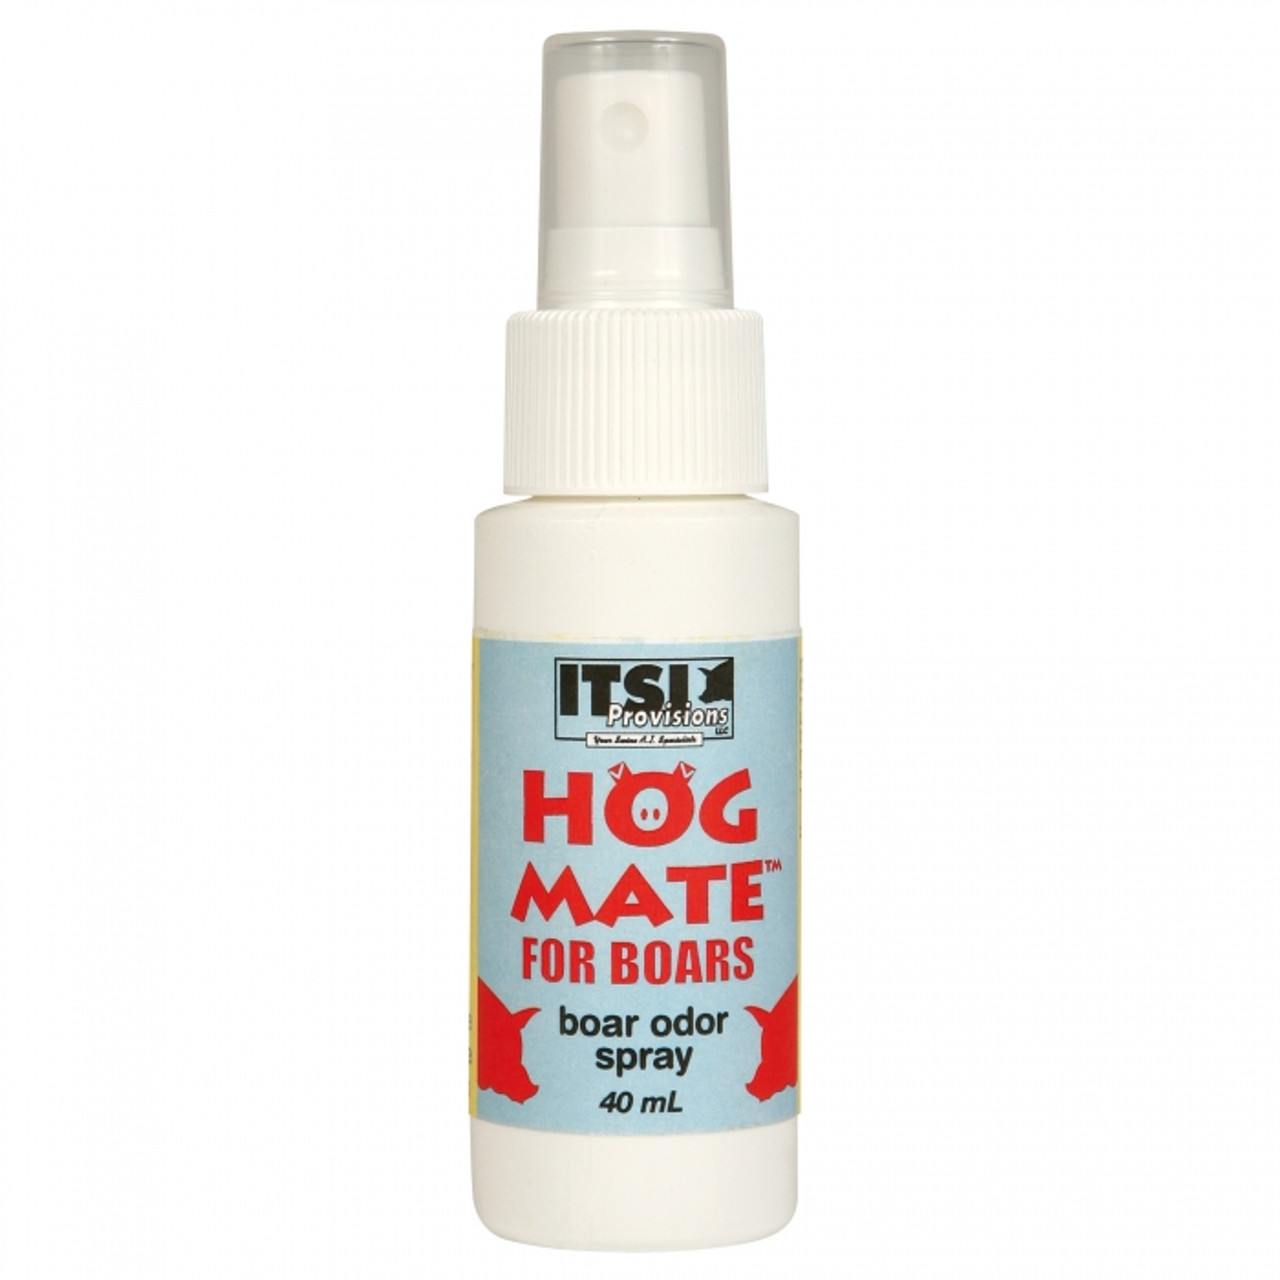 Hogmate for Boars